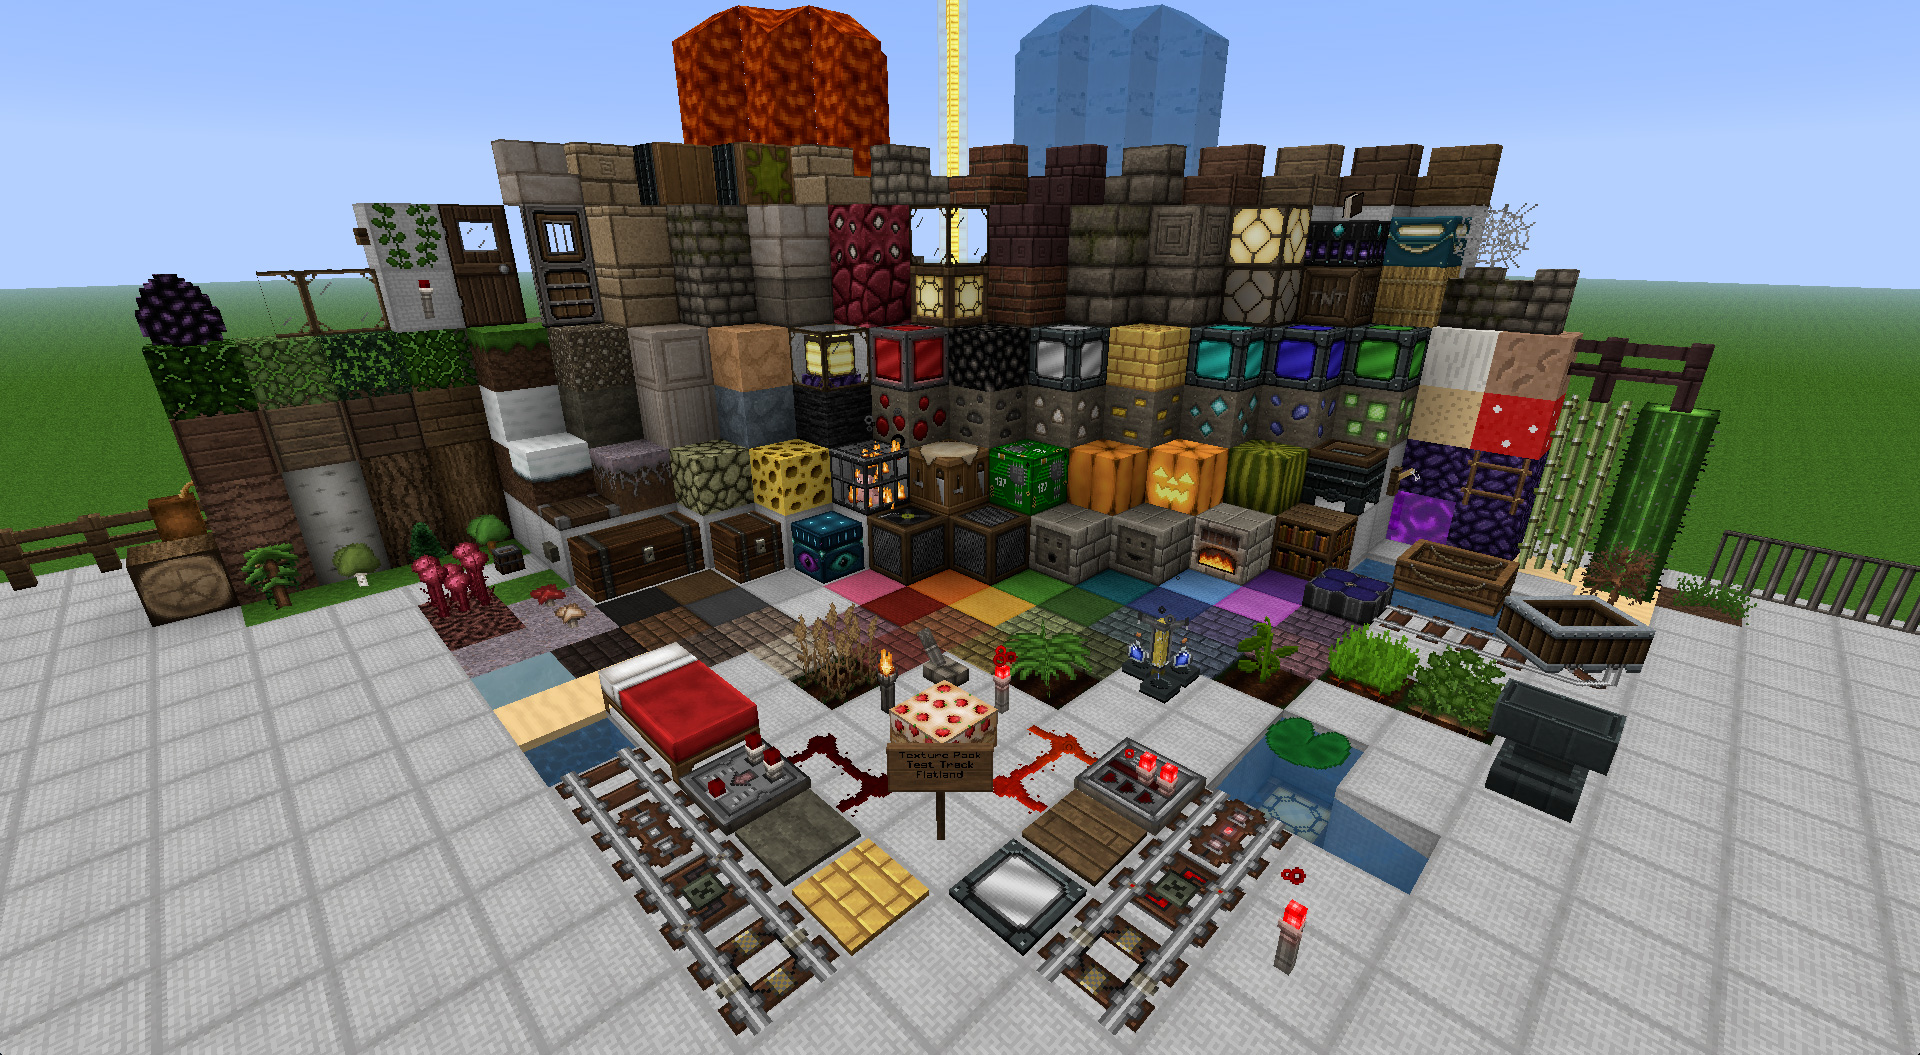 http://fr-minecraft.net/upload/textures/images/fr-minecraft_texture_XYHE_ozocraft-preview.jpg